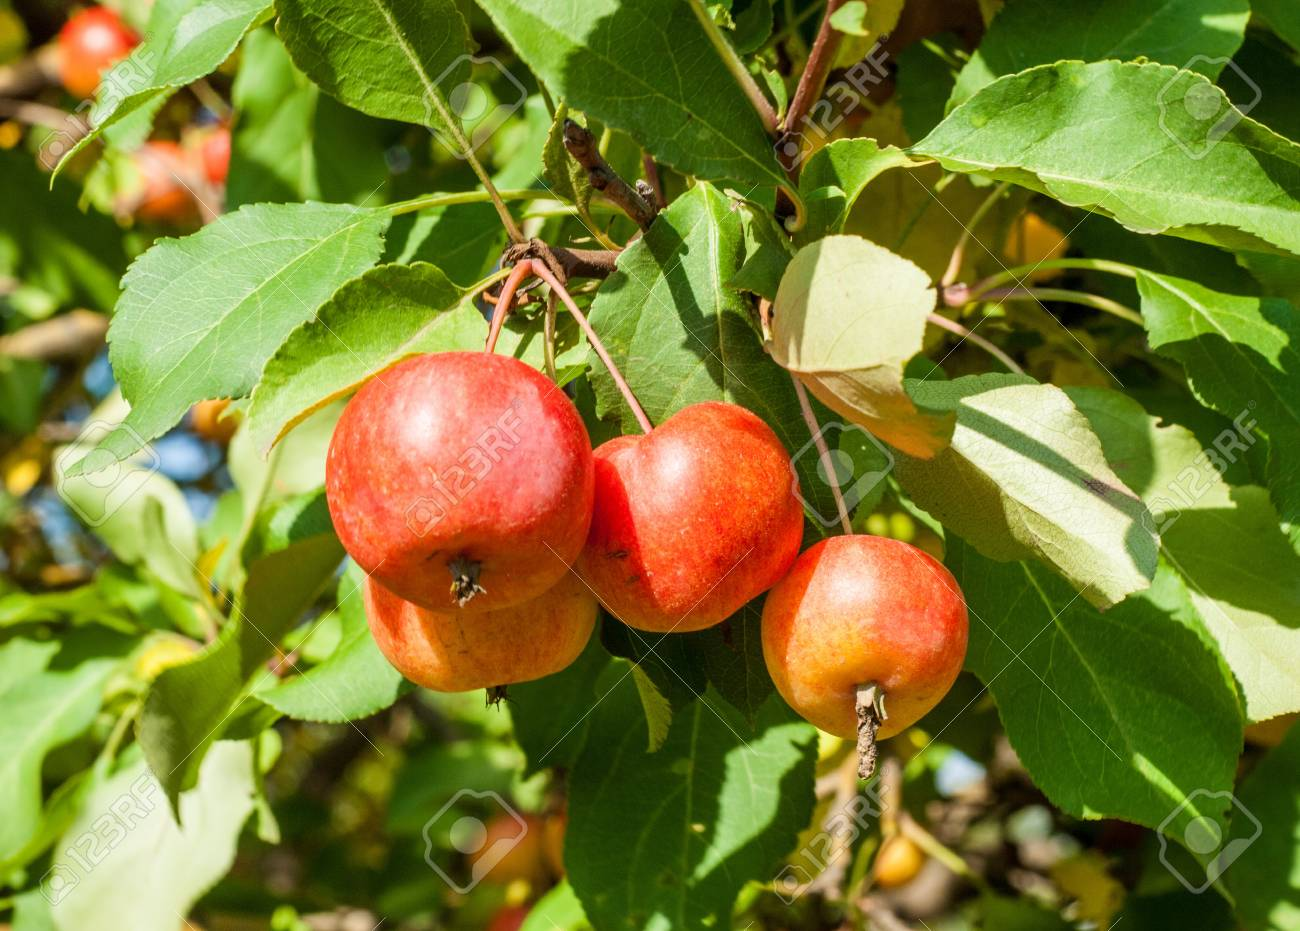 Ornamental Crabapple Fruit